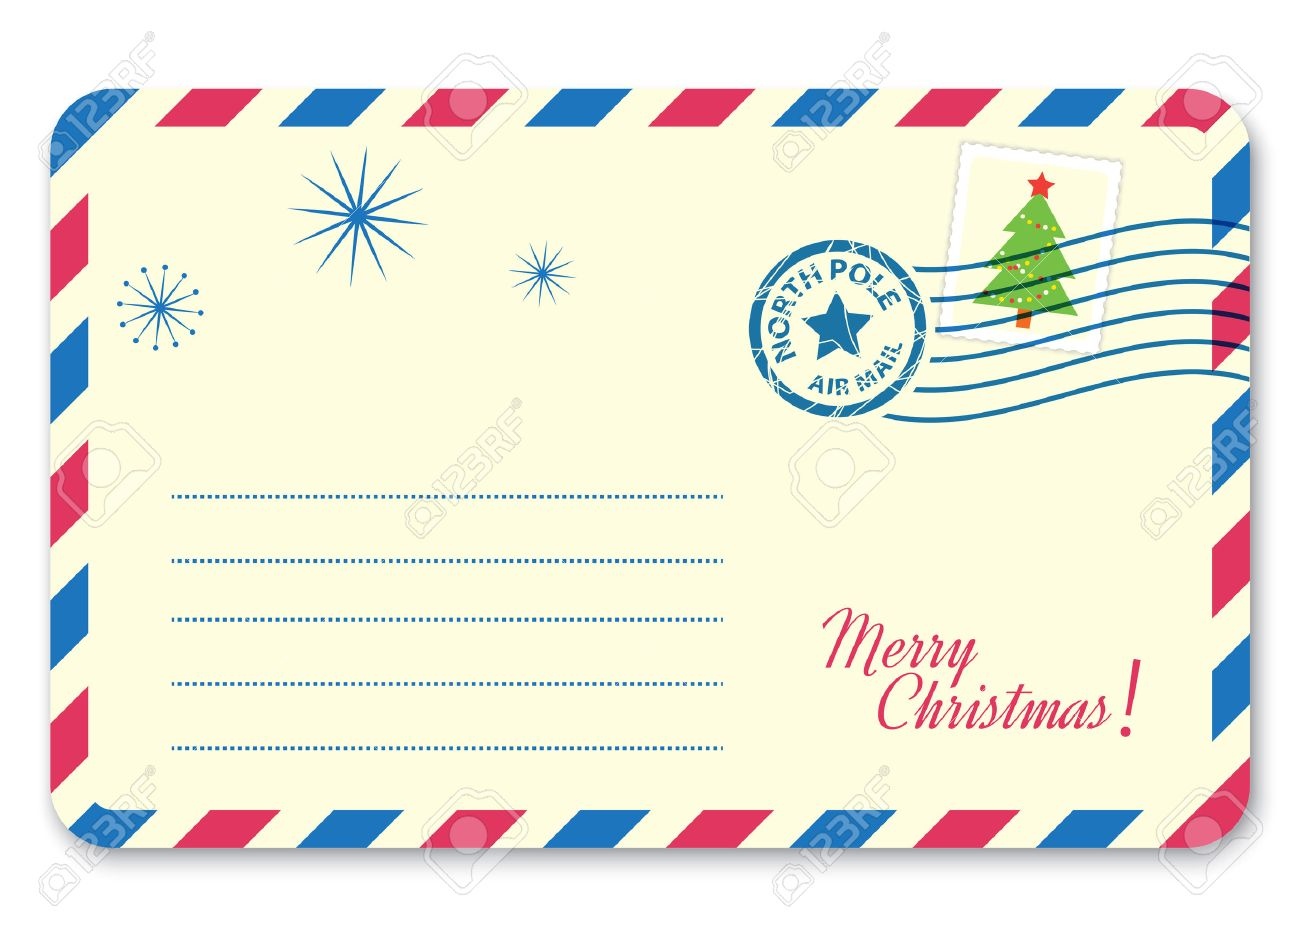 Template New YearS Letter To Santa Claus With Stamp And Postage